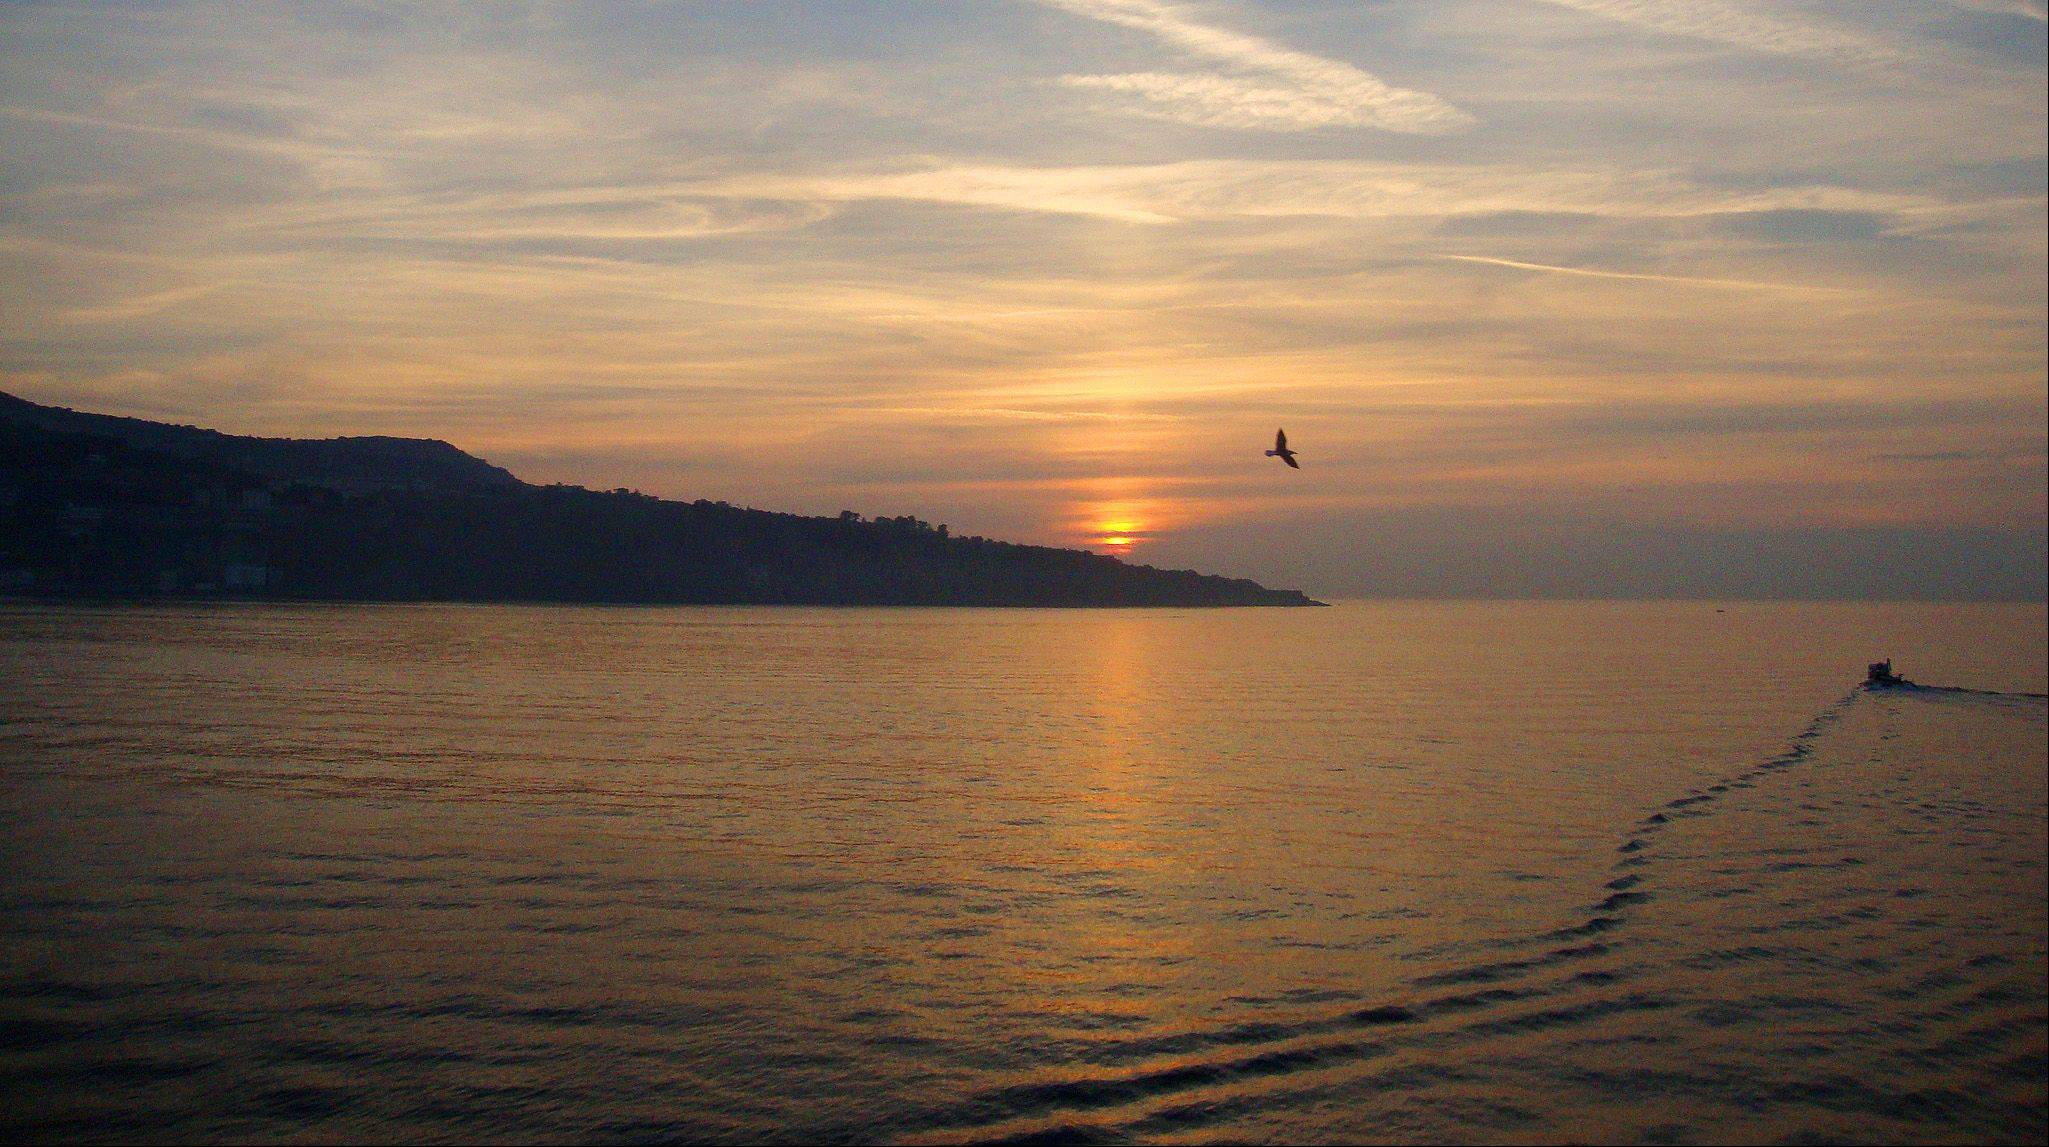 I took this photo off the coast of Sorrento, Italy in November. The sea was just still and flat. A perfect setting